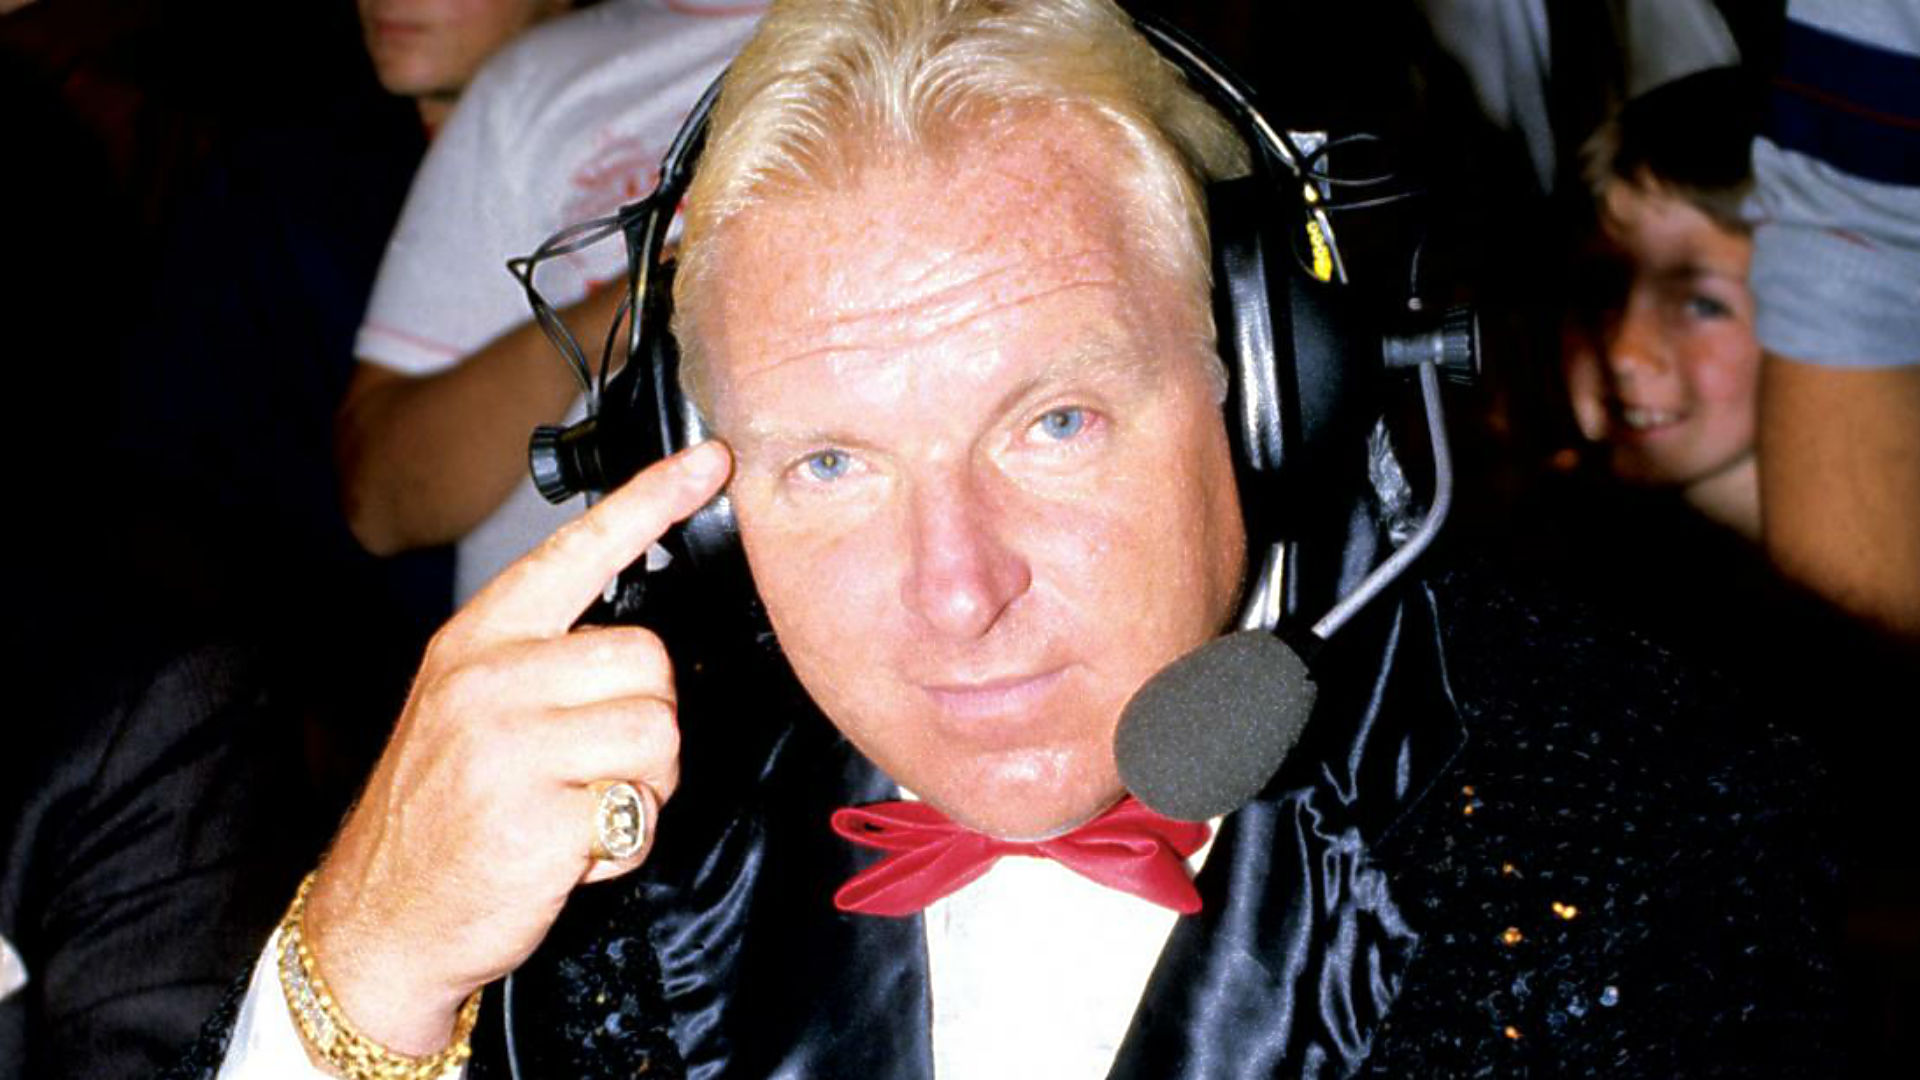 WWE Broadcaster & Manager Bobby 'The Brain' Heenan died at age of 73